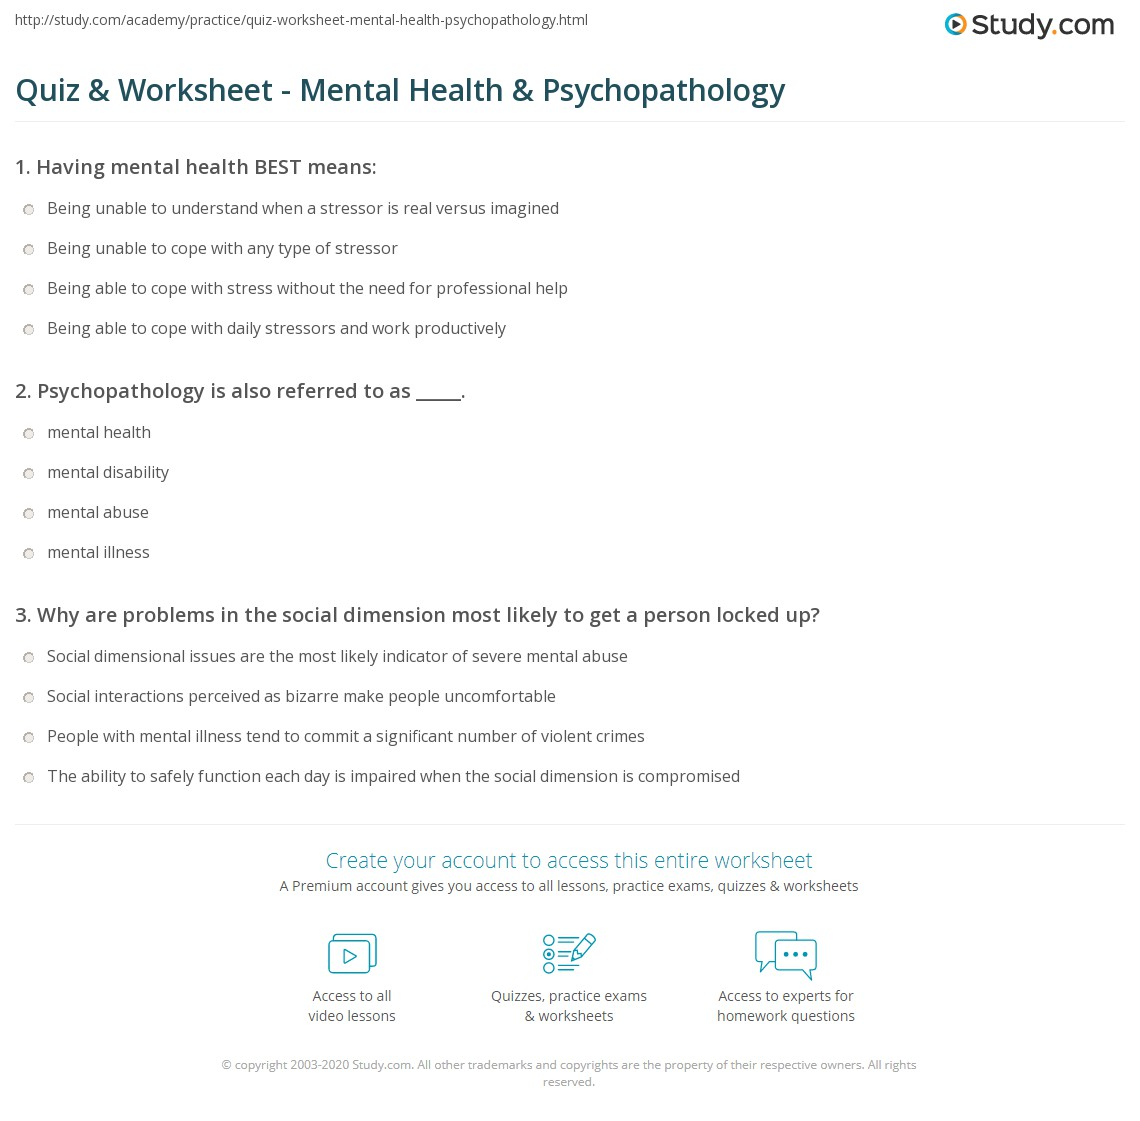 a study on the mental setup Start studying exam 3 study guide mental health learn vocabulary, terms, and more with flashcards, games, and other study tools.